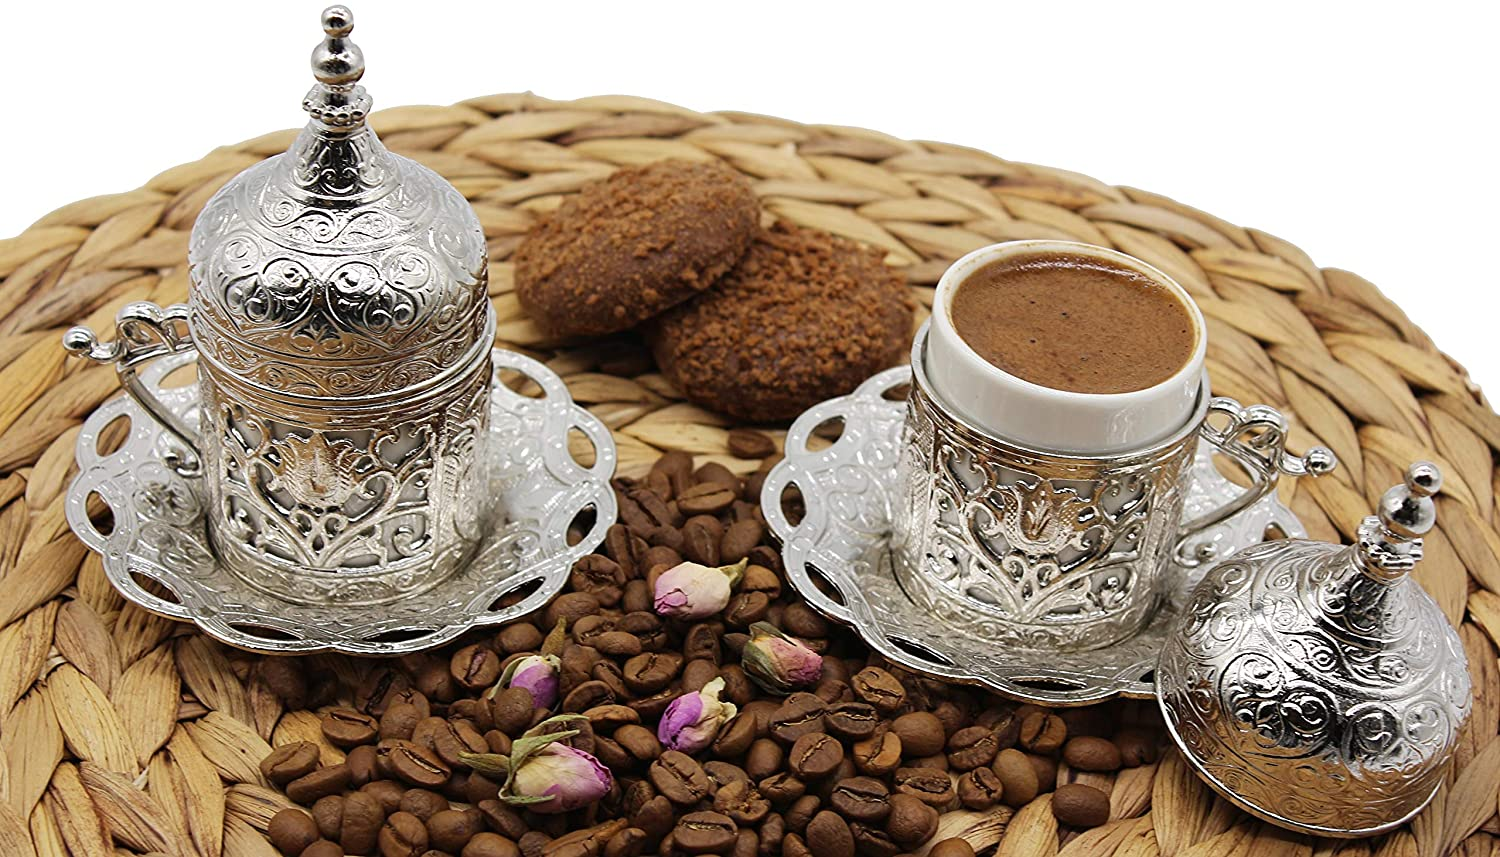 HeraCraft Set Of 2 Turkish Greek Arabic Moroccan Coffee & Espresso Cup with Inner Porcelain, Metal Holder, Saucer and Lid. 1 Cup Consists of 4 pieces & Handmade (Silver)